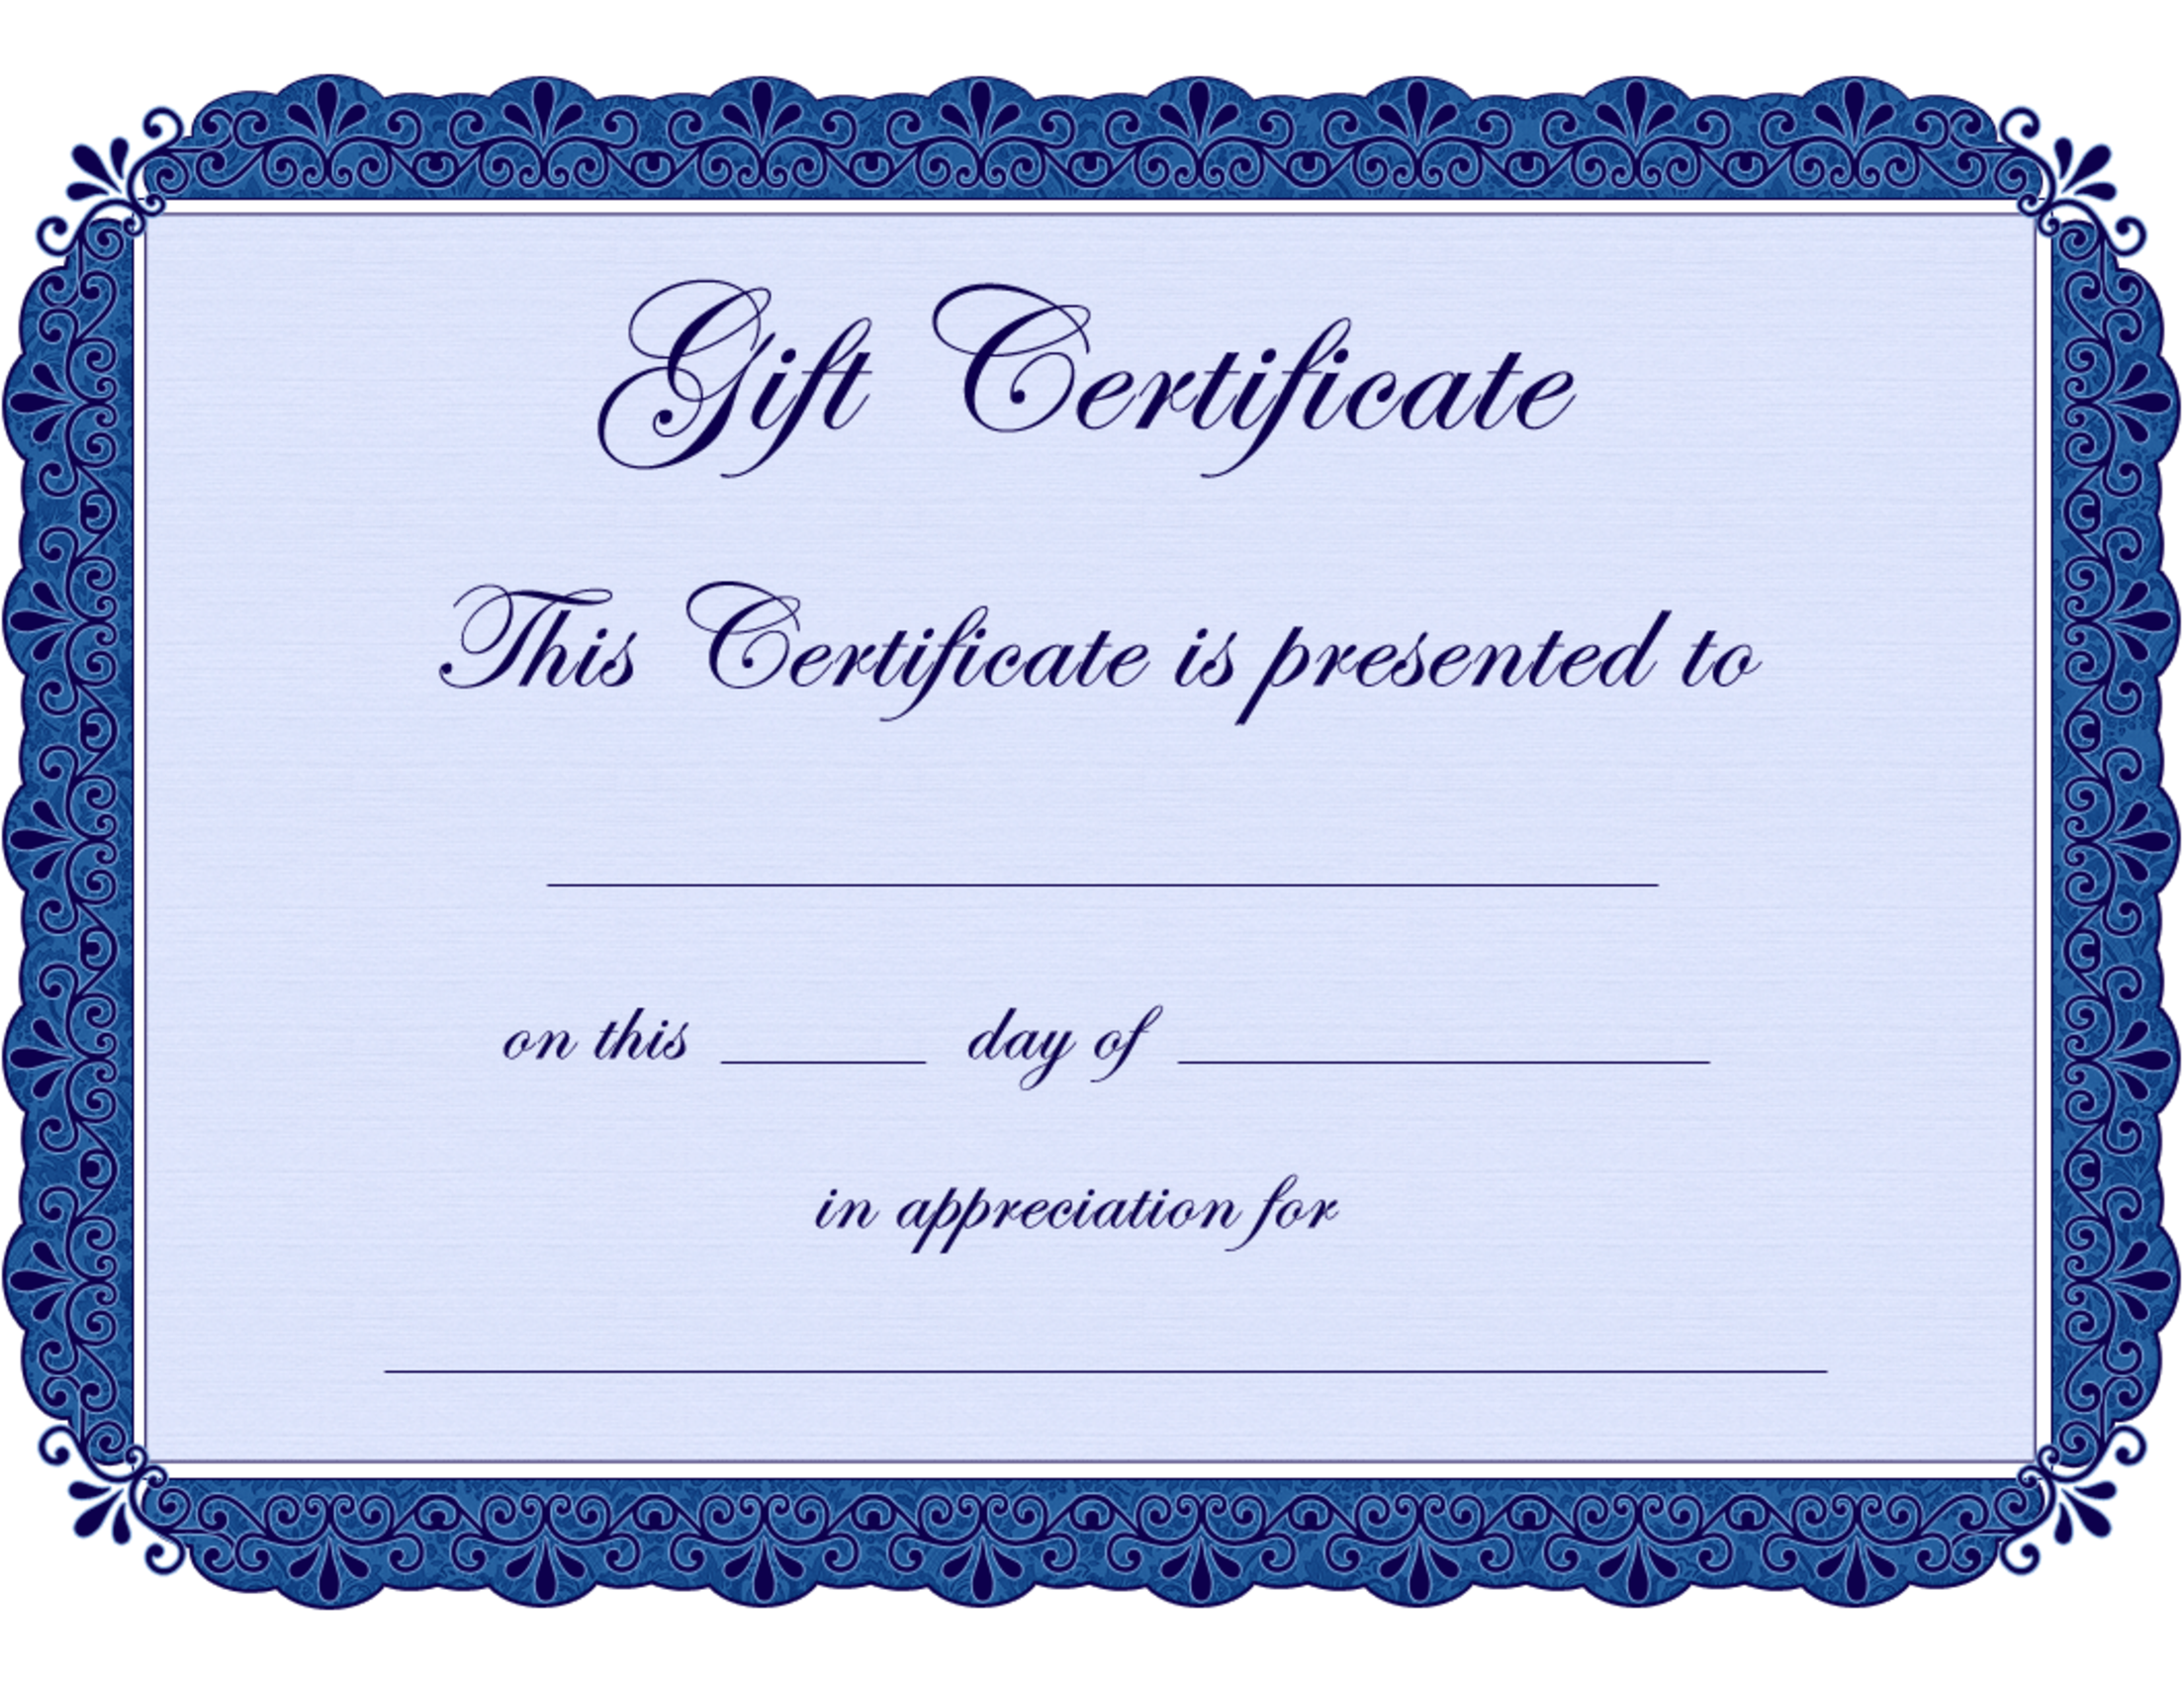 Babysitting gift certificate template for Babysitting gift certificate template